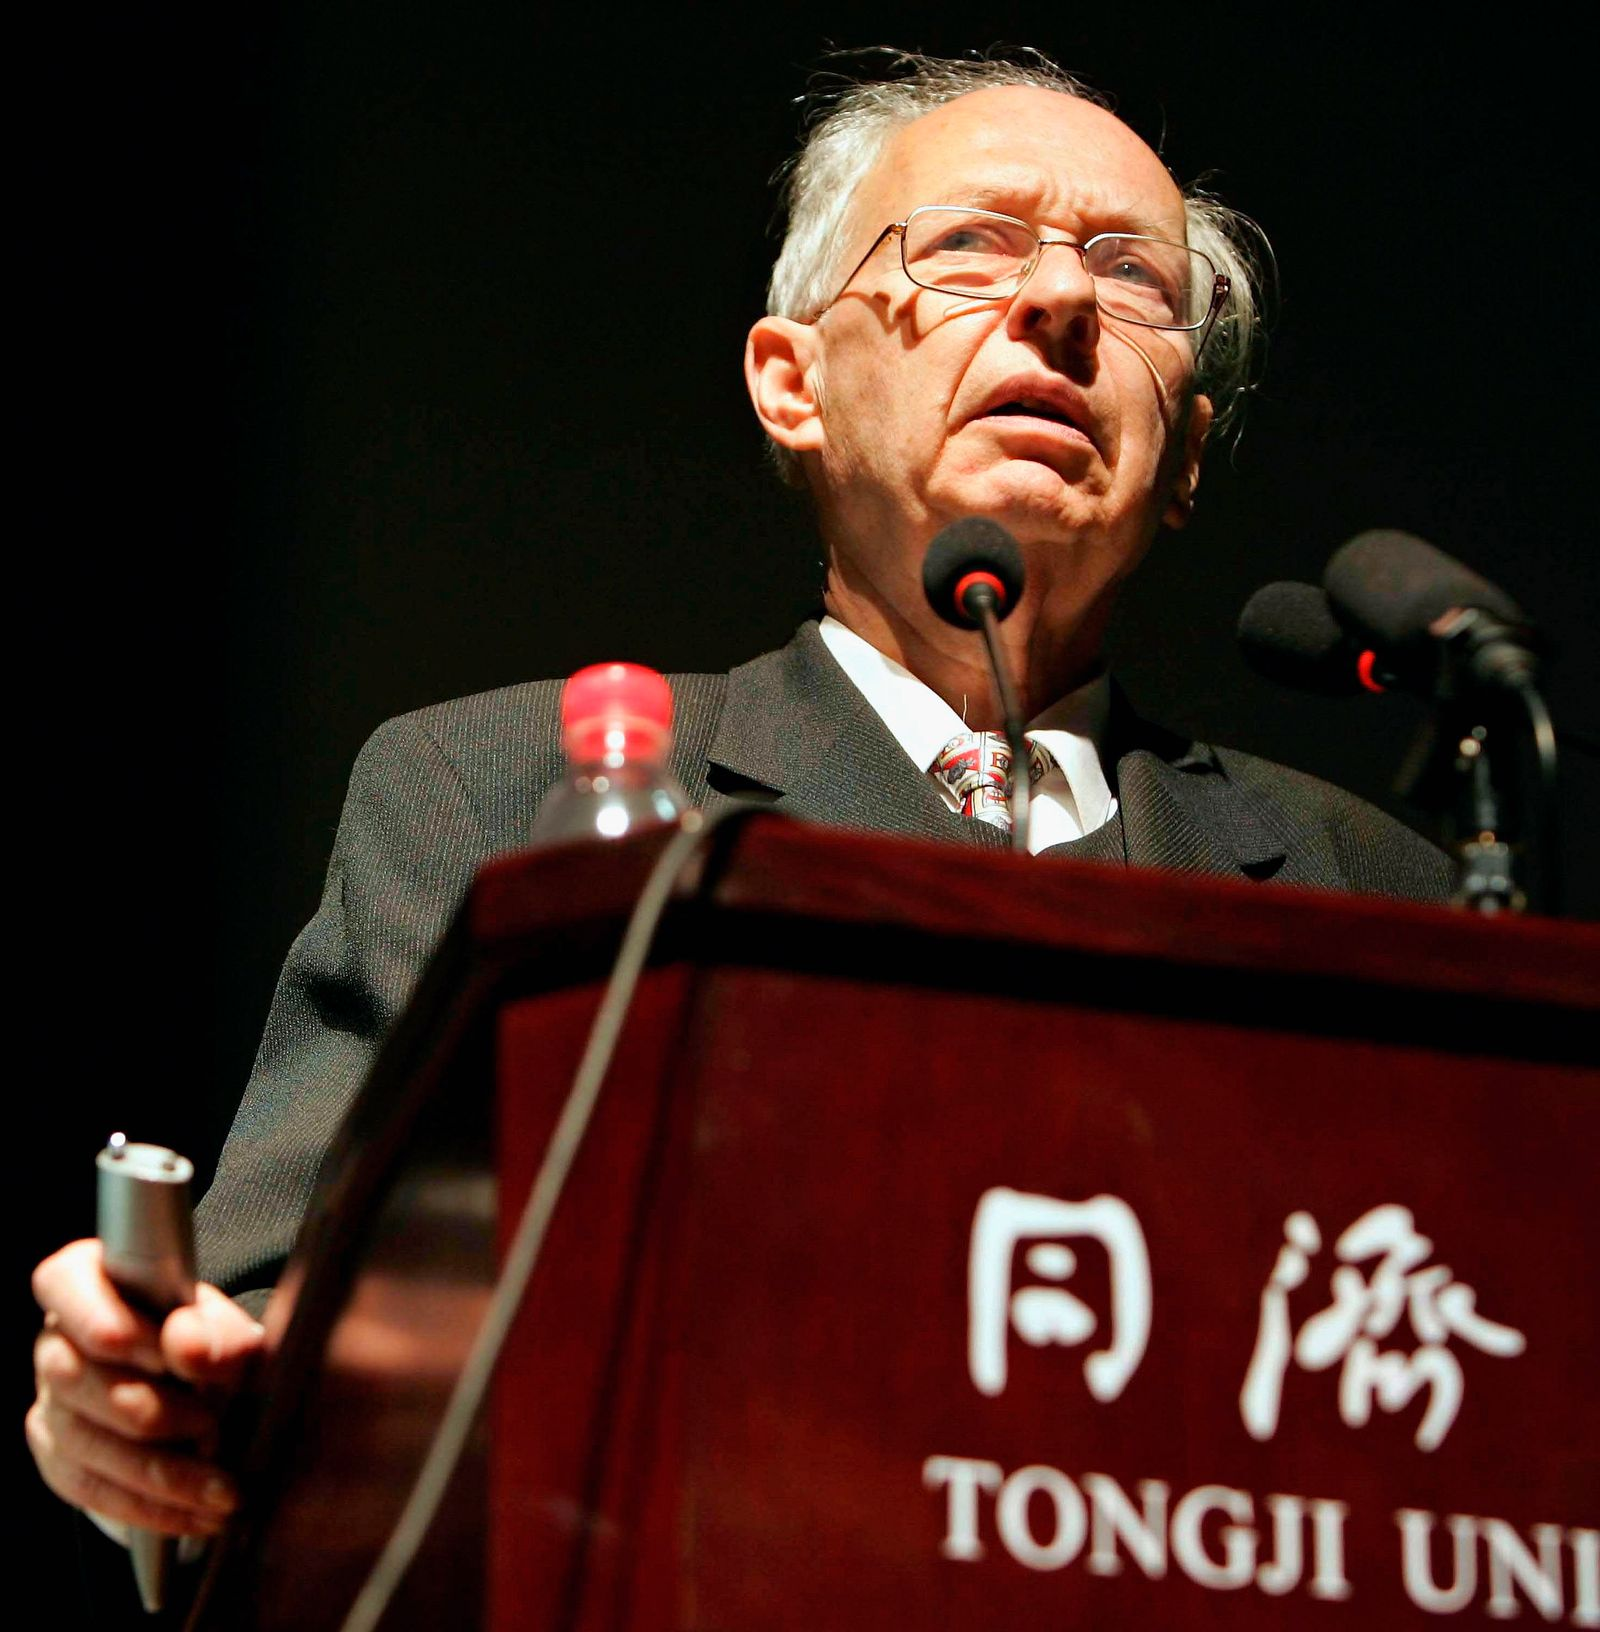 Economist Reinhard Selten Gives A Speech In Tongji University